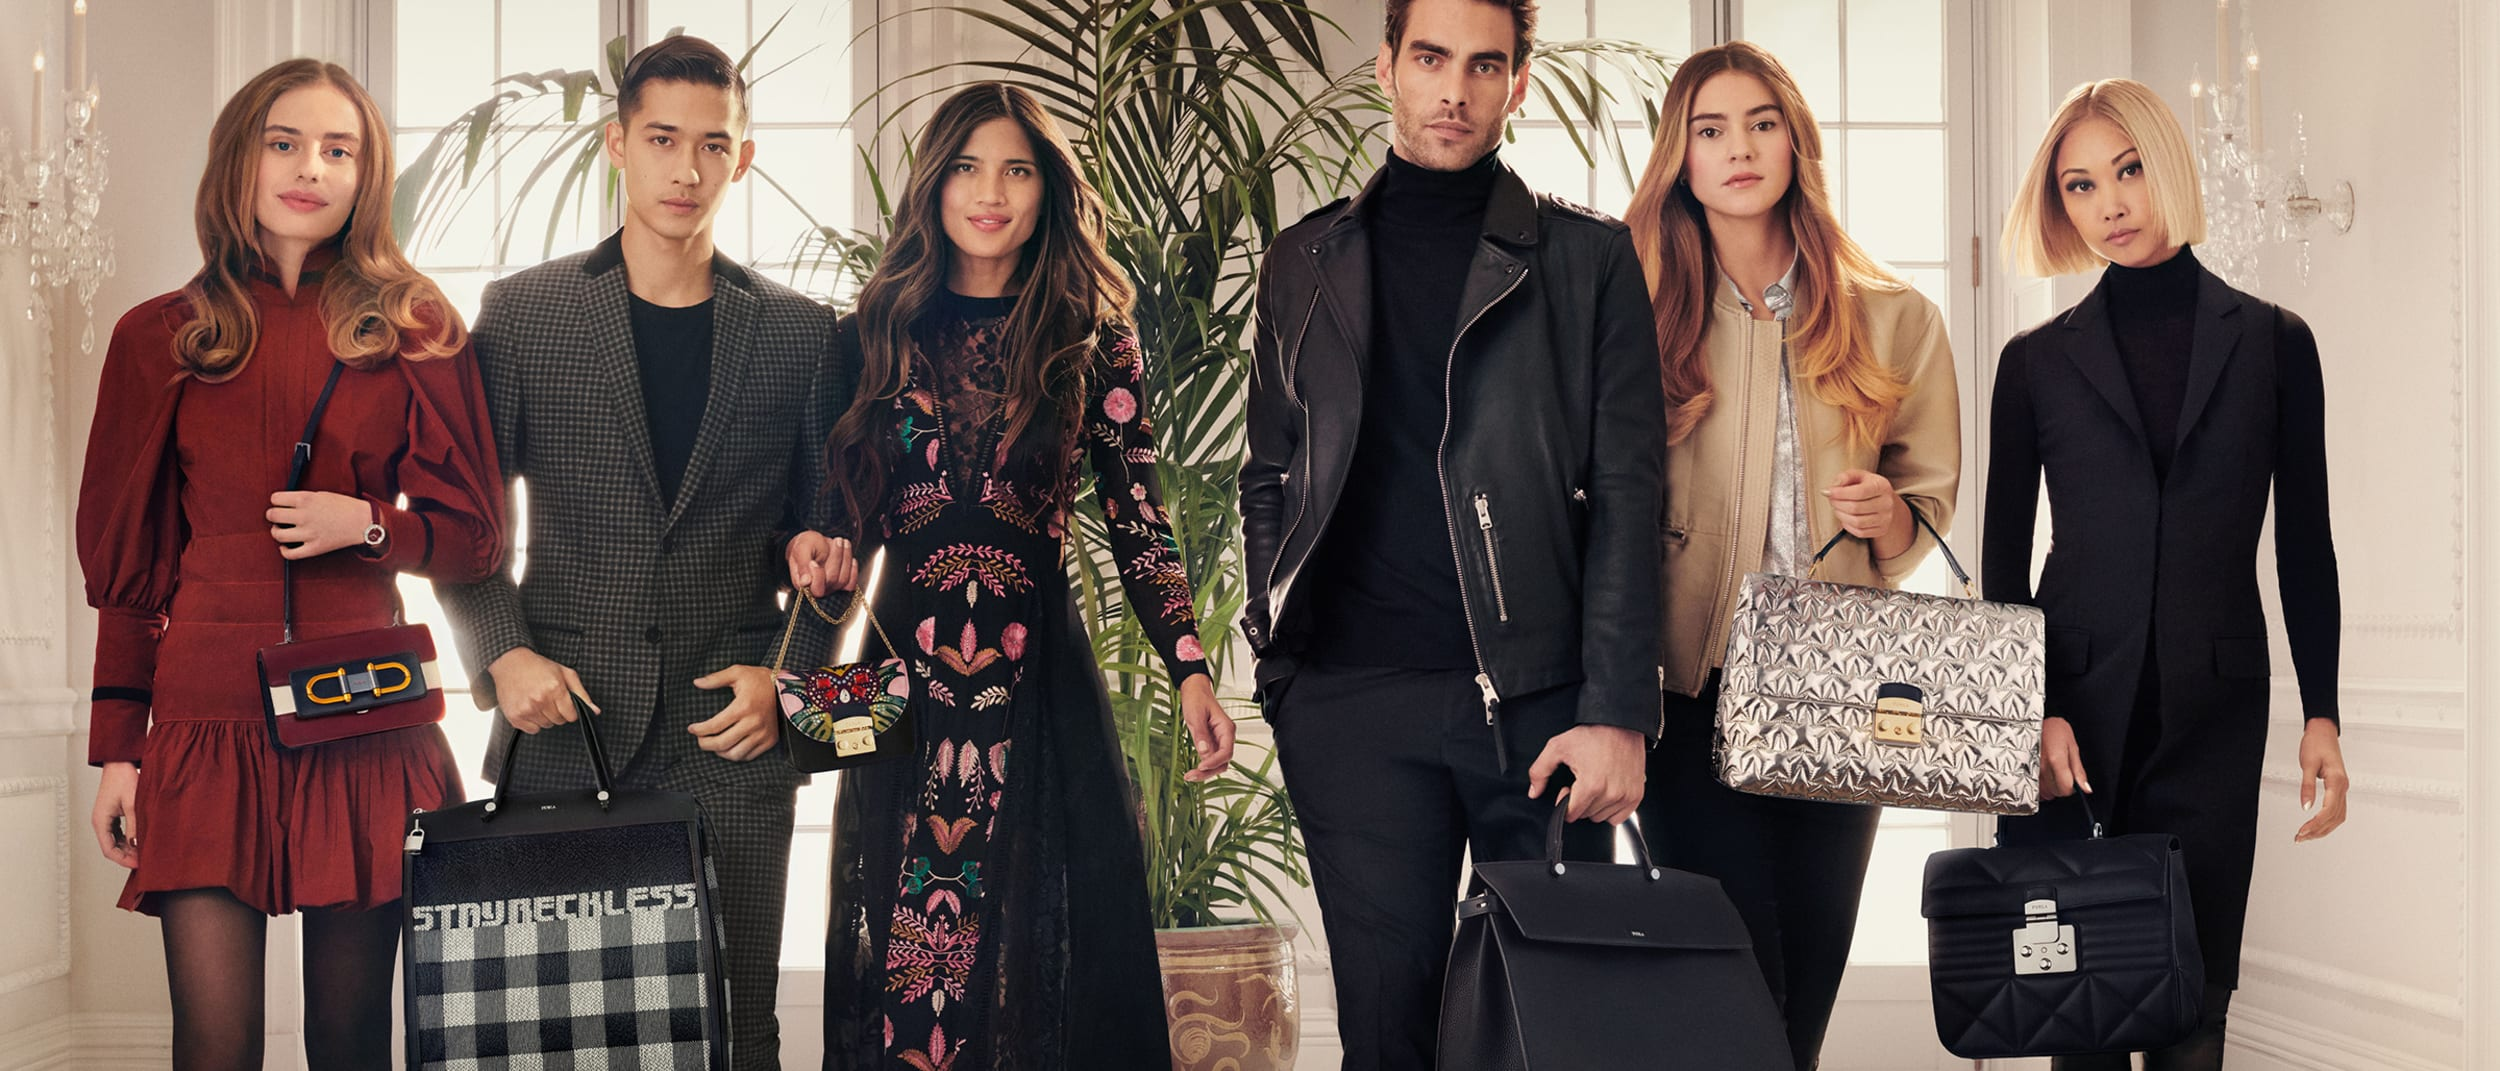 Furla launches the new Fall Winter collection